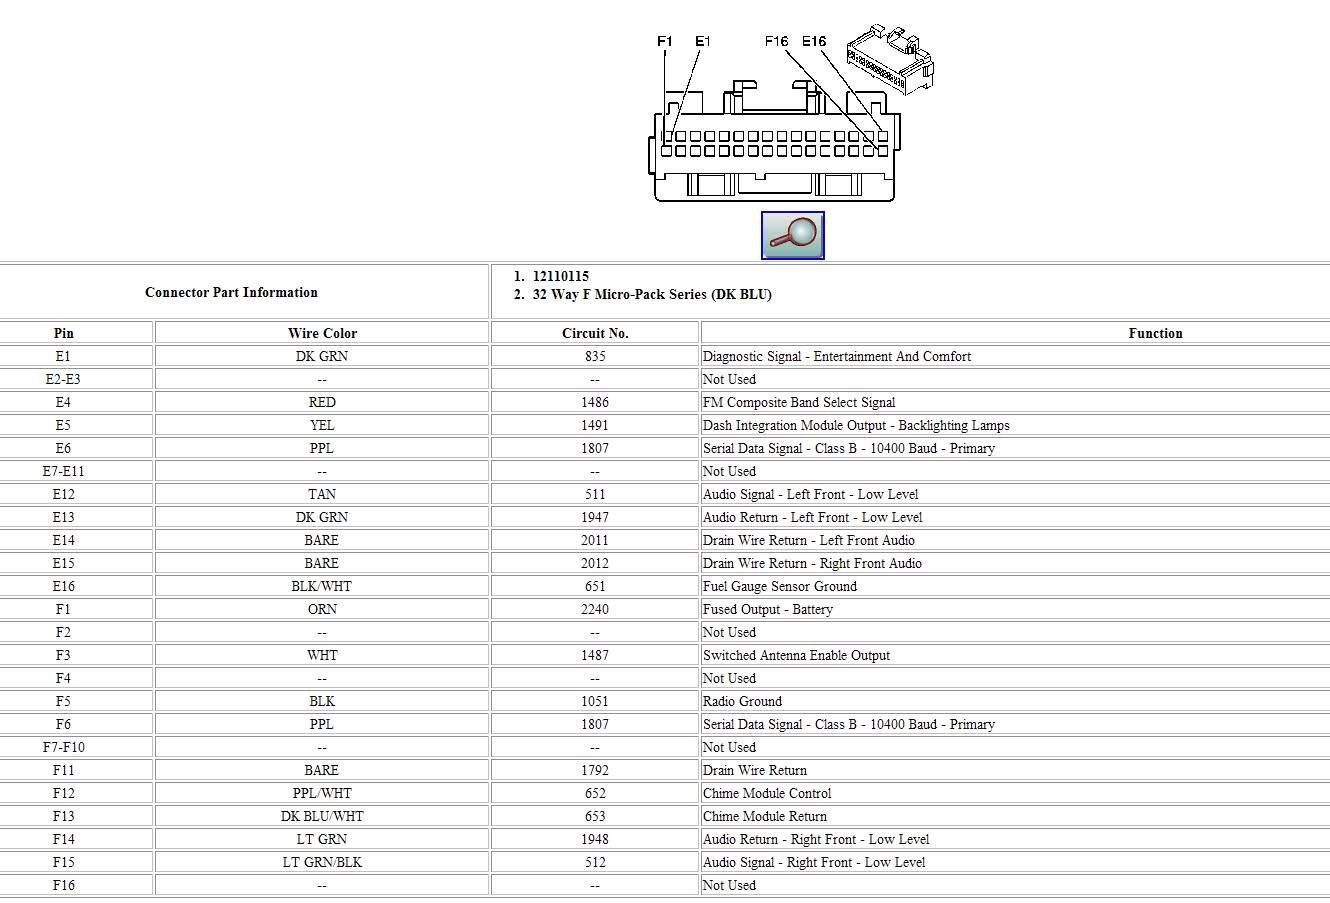 2000 bose wiring diagram wiring diagram structure MTX Thunder Amp Wiring Diagram